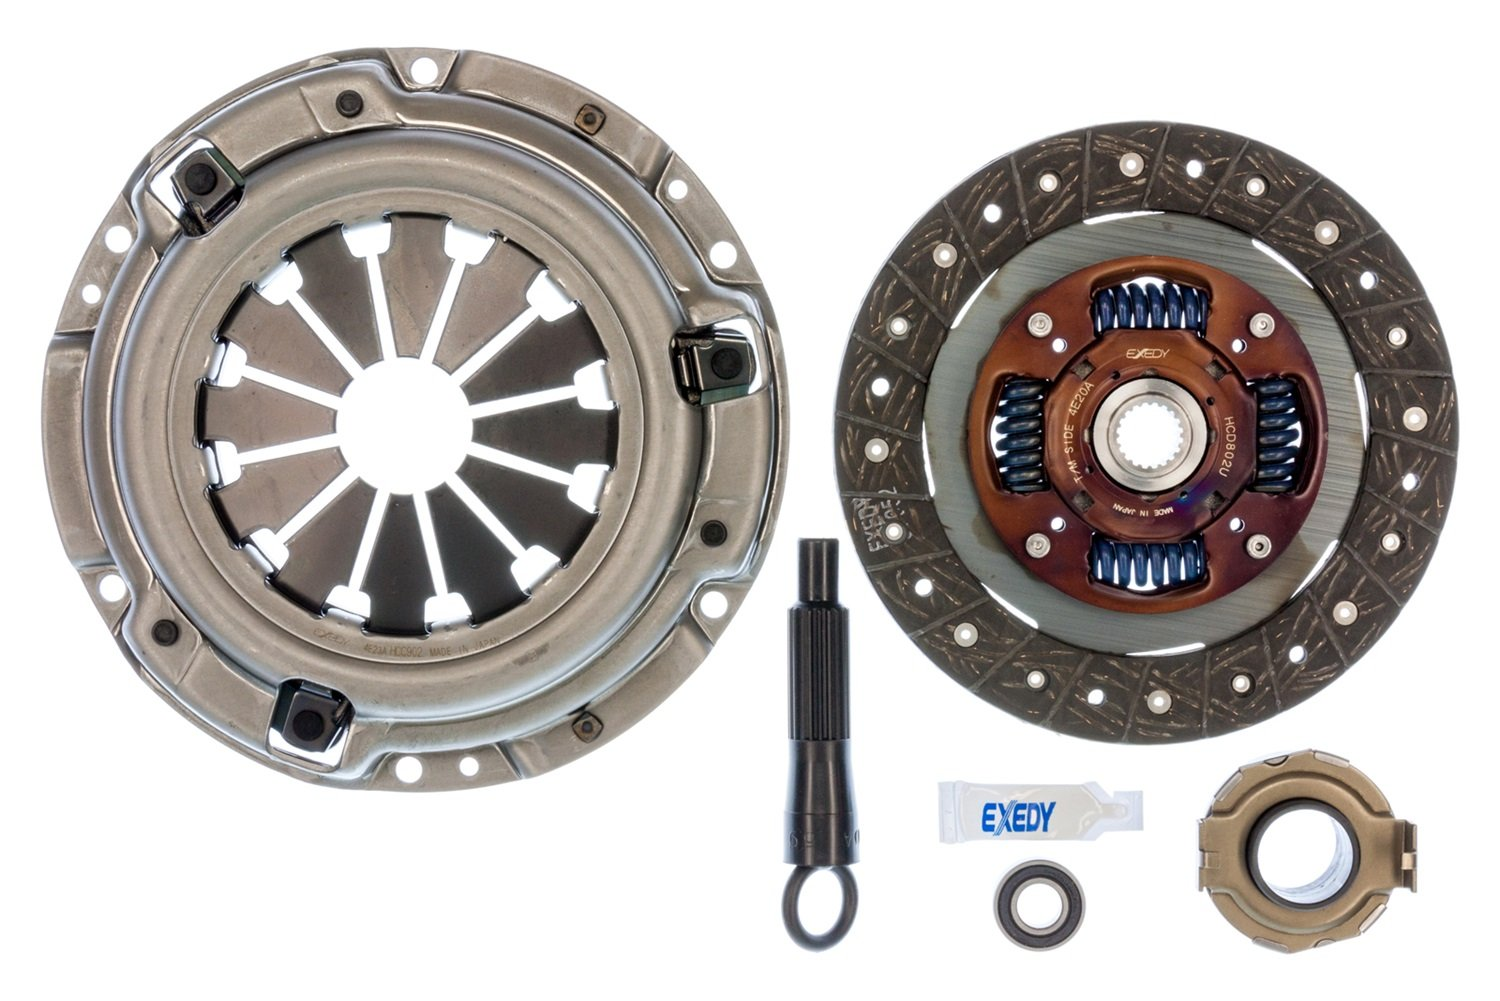 EXEDY 08022 OEM Replacement Clutch Kit